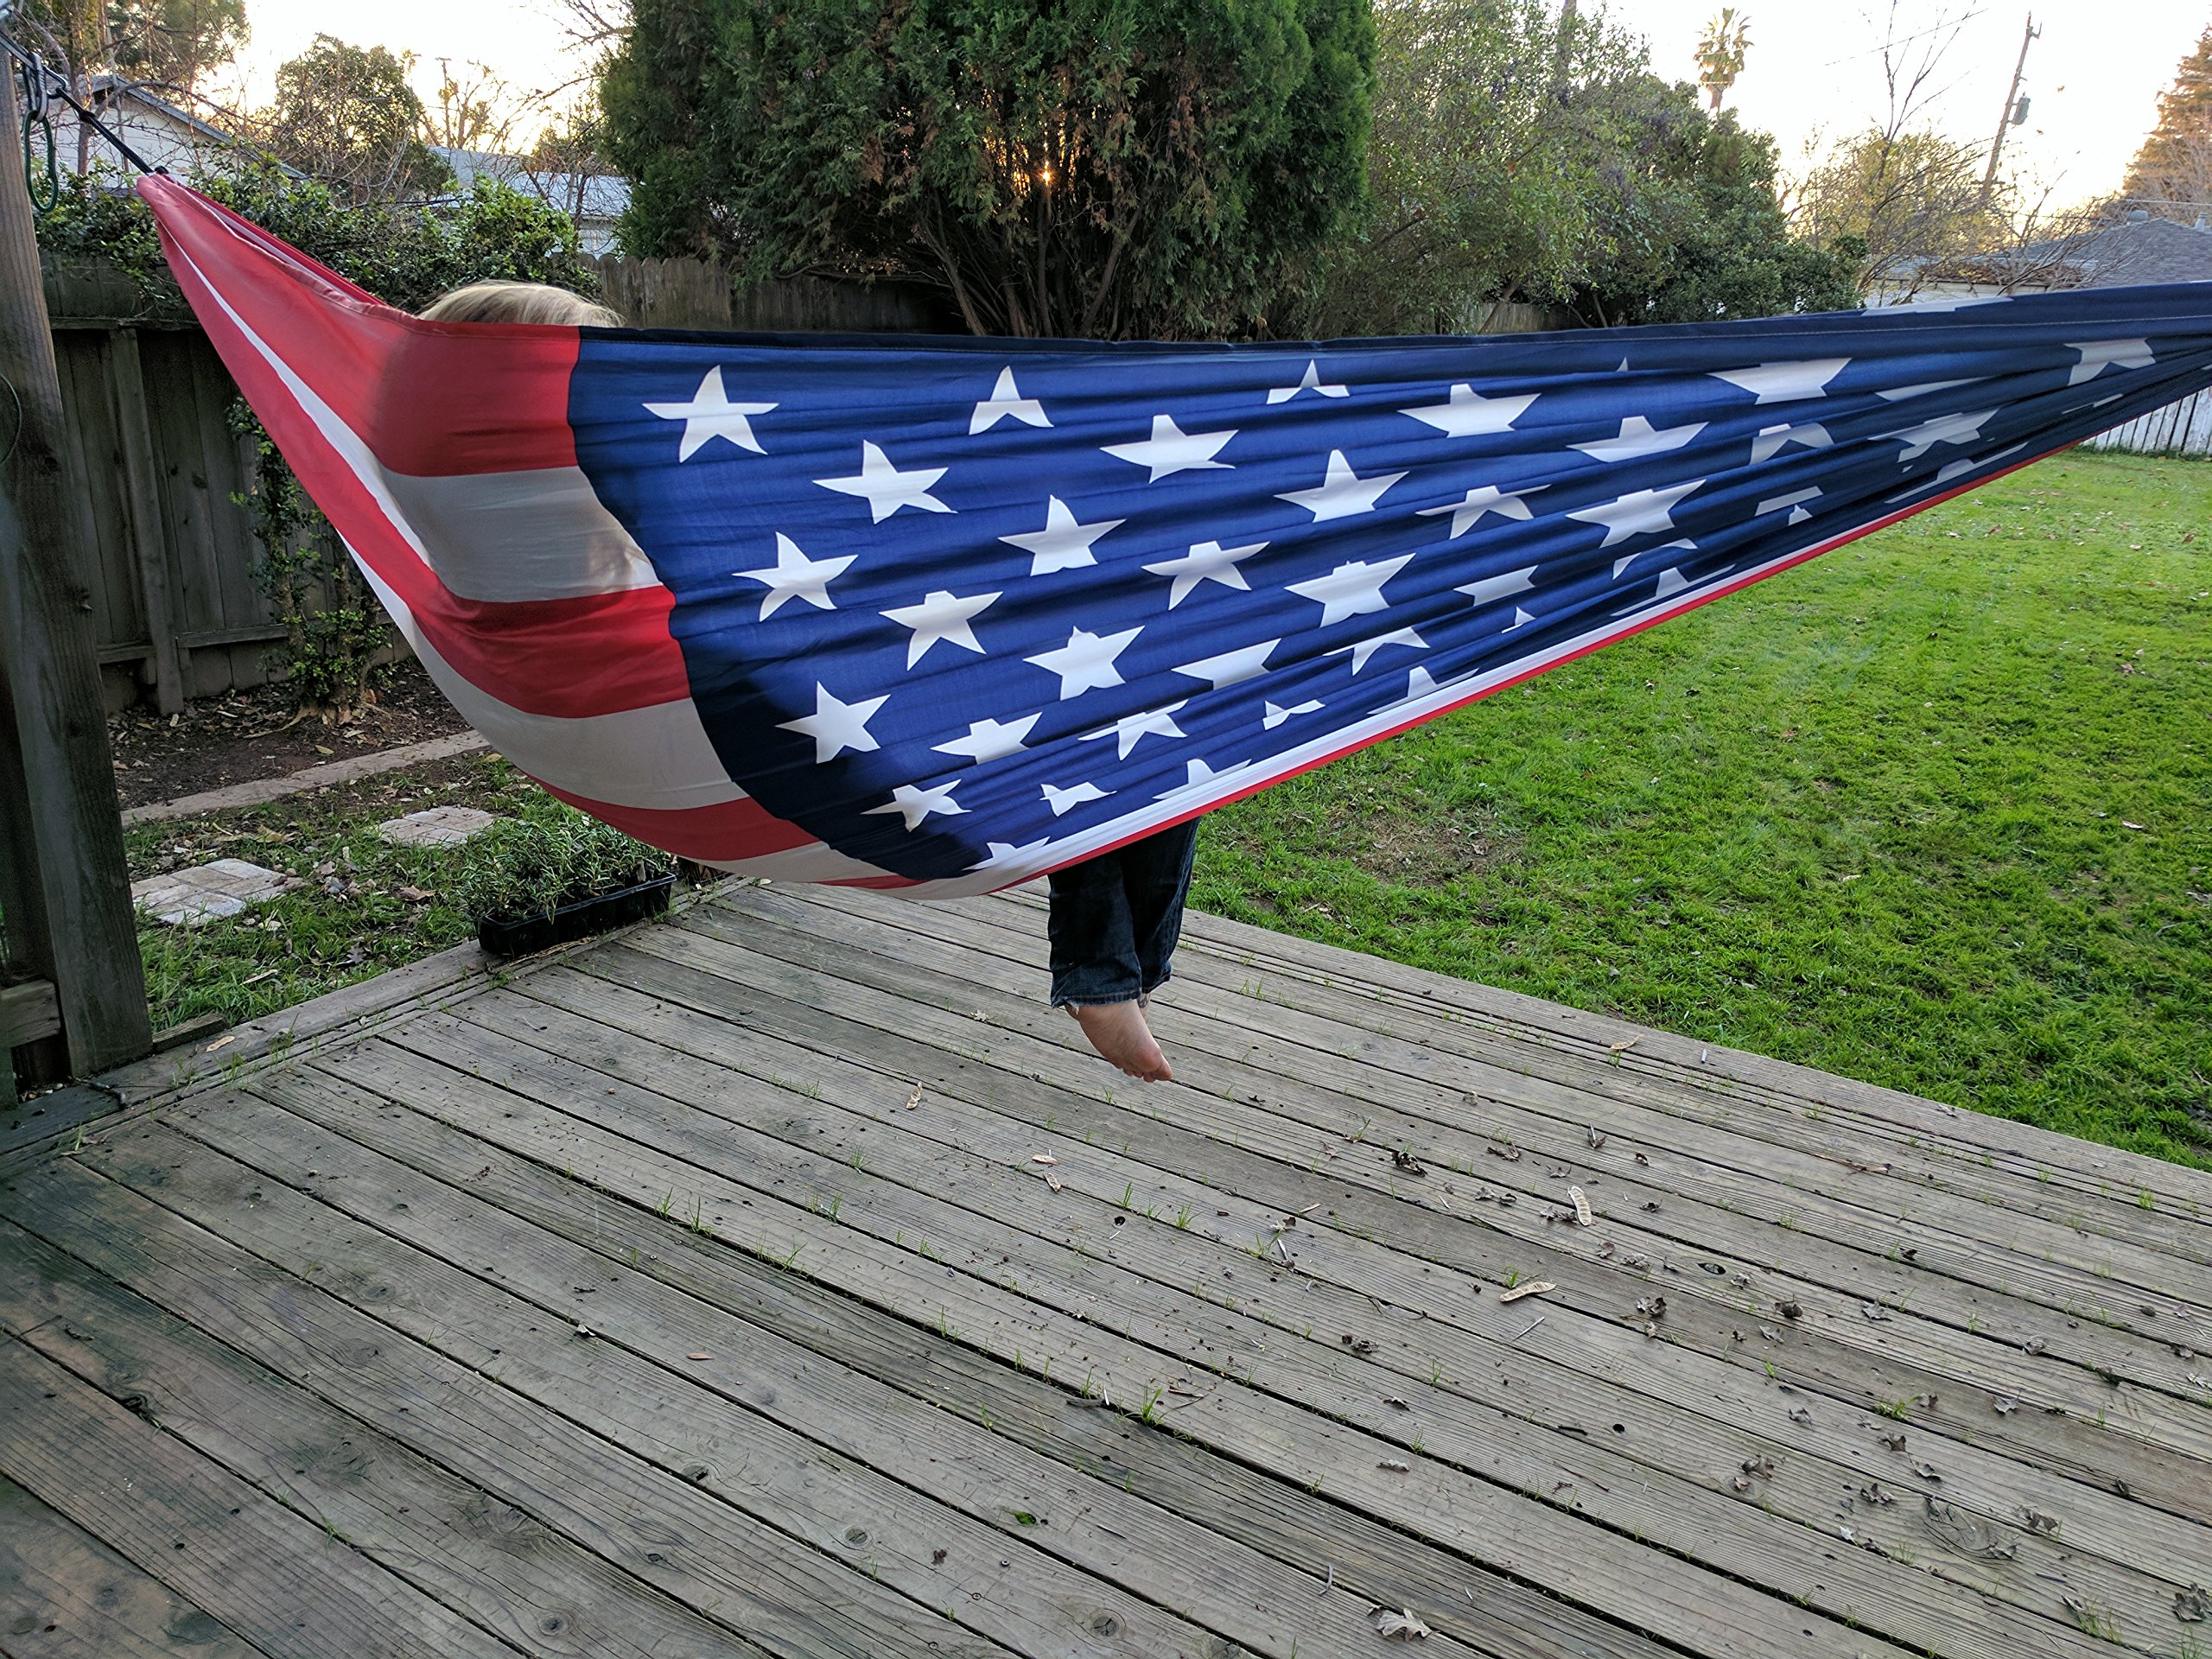 Freedom Flag American Flag Hammock; Portable Double Wide Parachute Camping Hammock with Patriotic USA Flag design